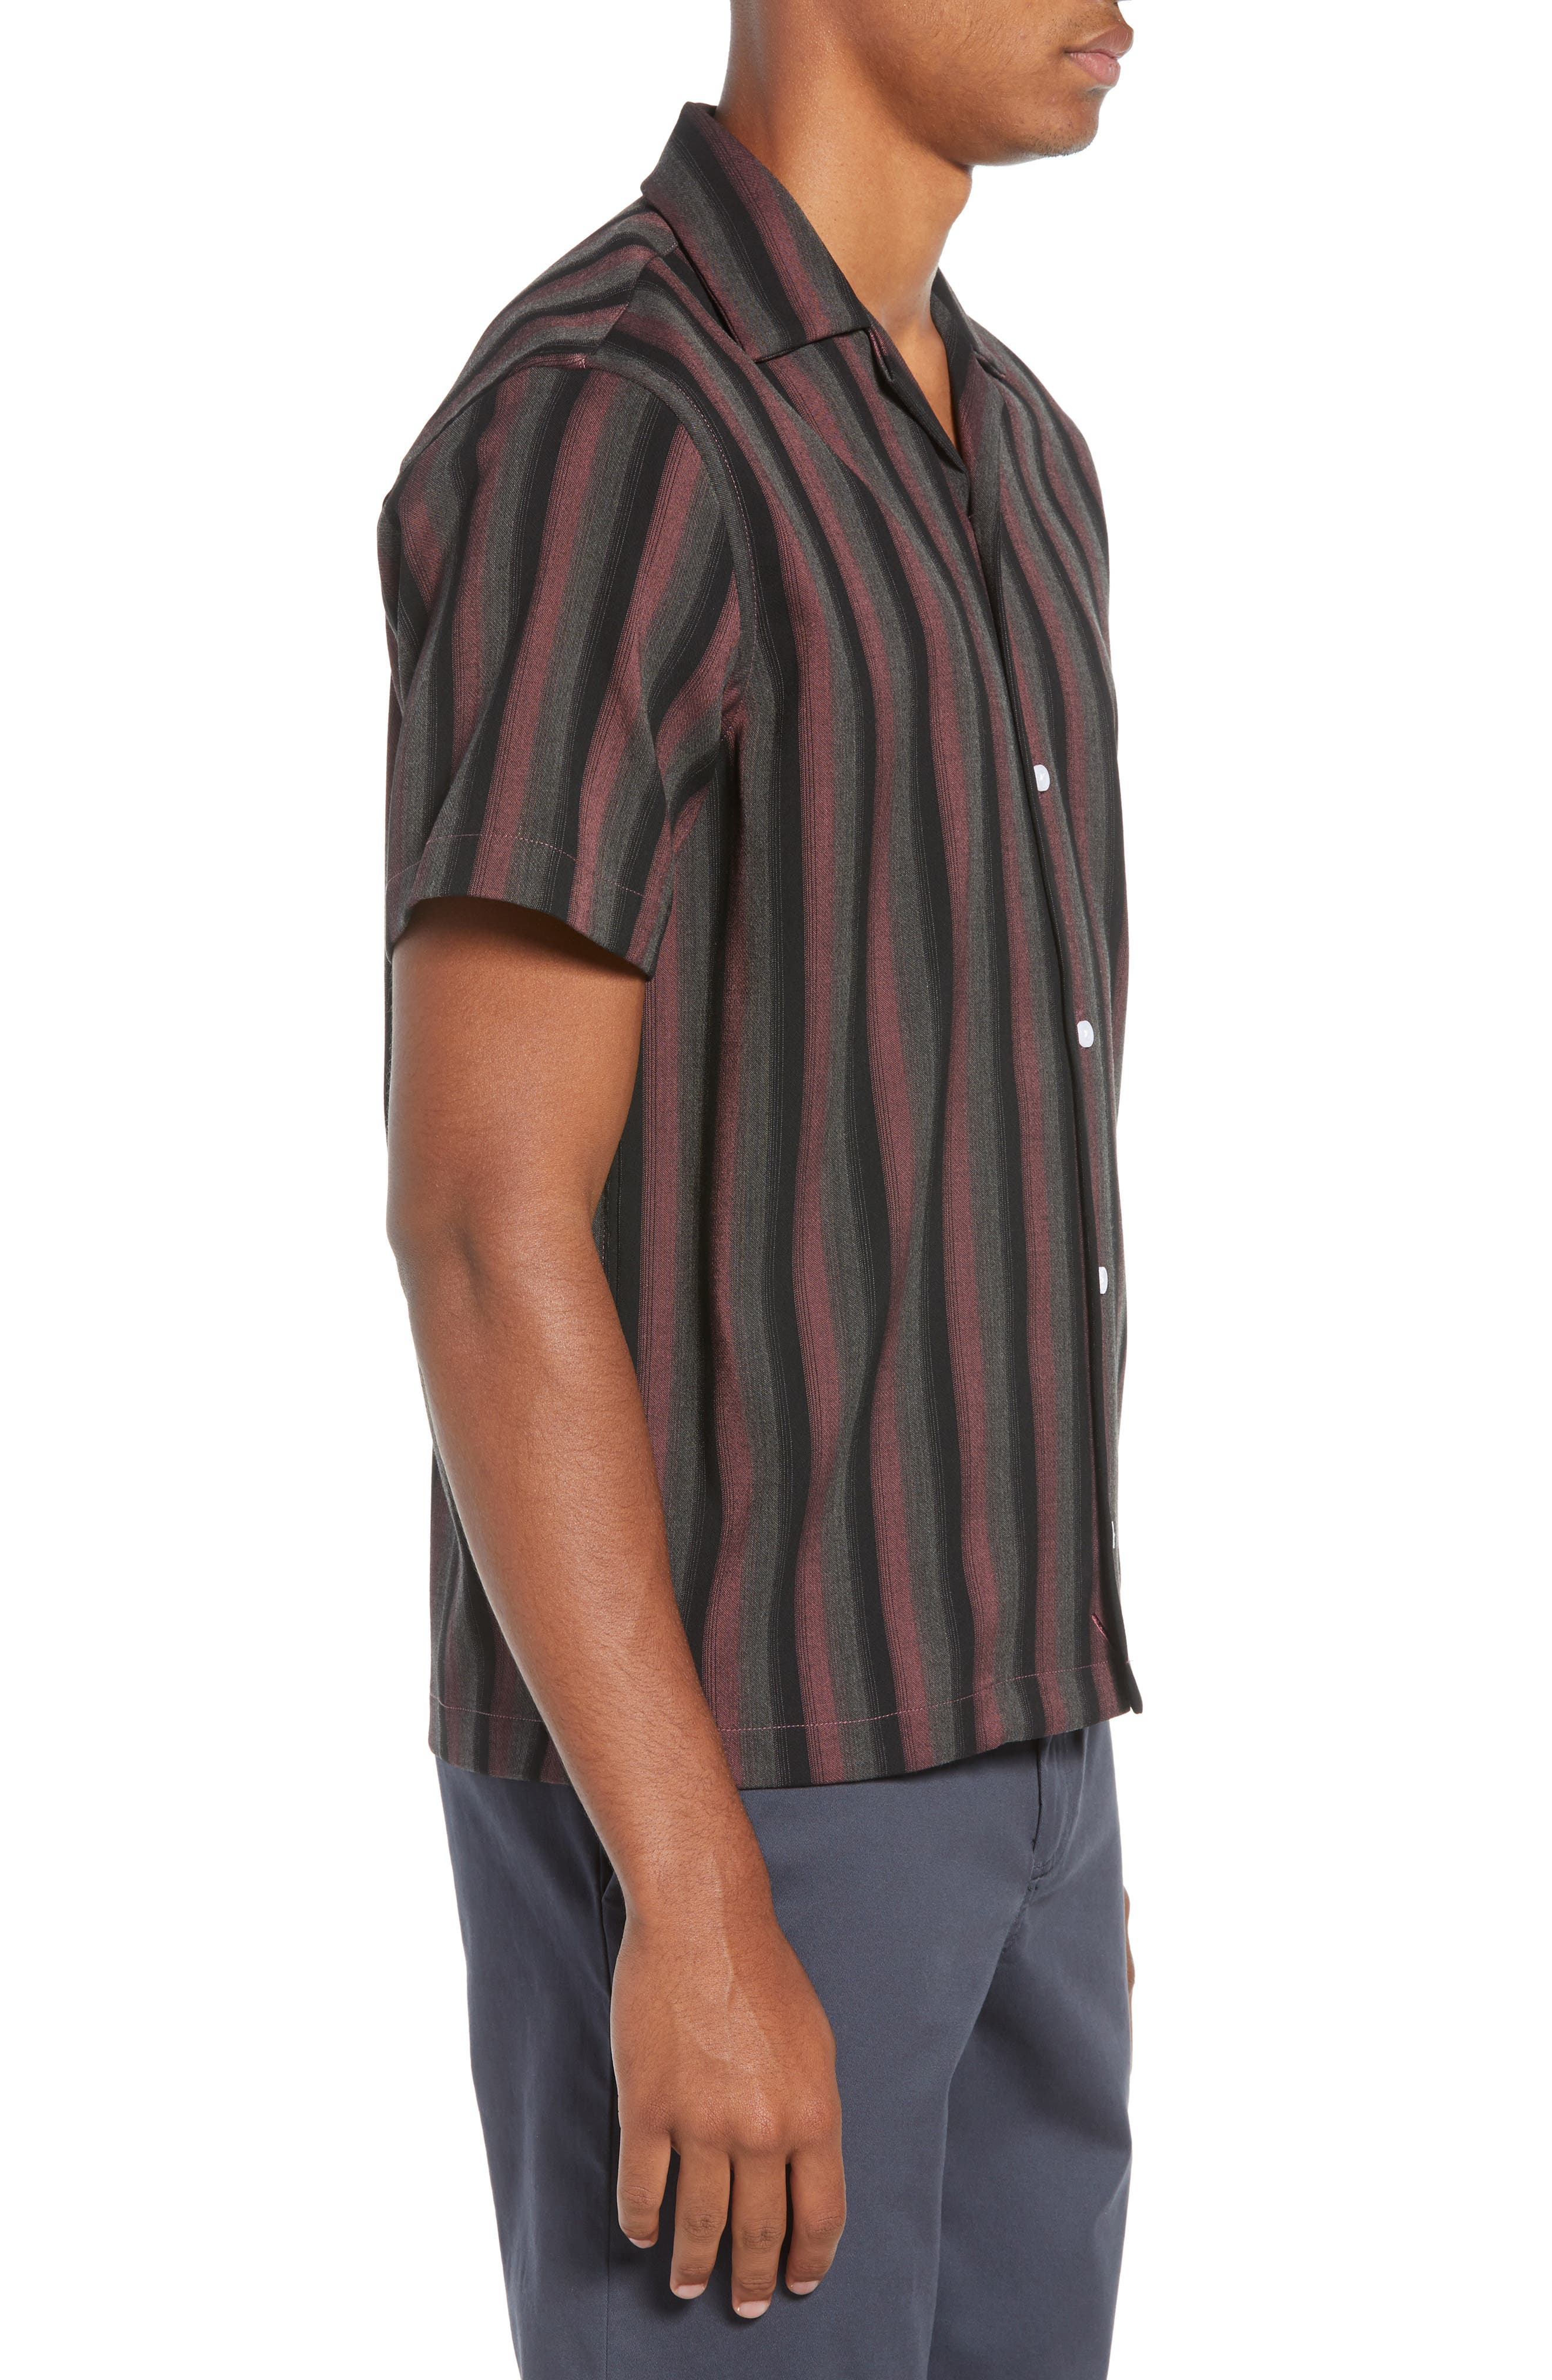 Canty Frequency Camp Shirt,                             Alternate thumbnail 4, color,                             650